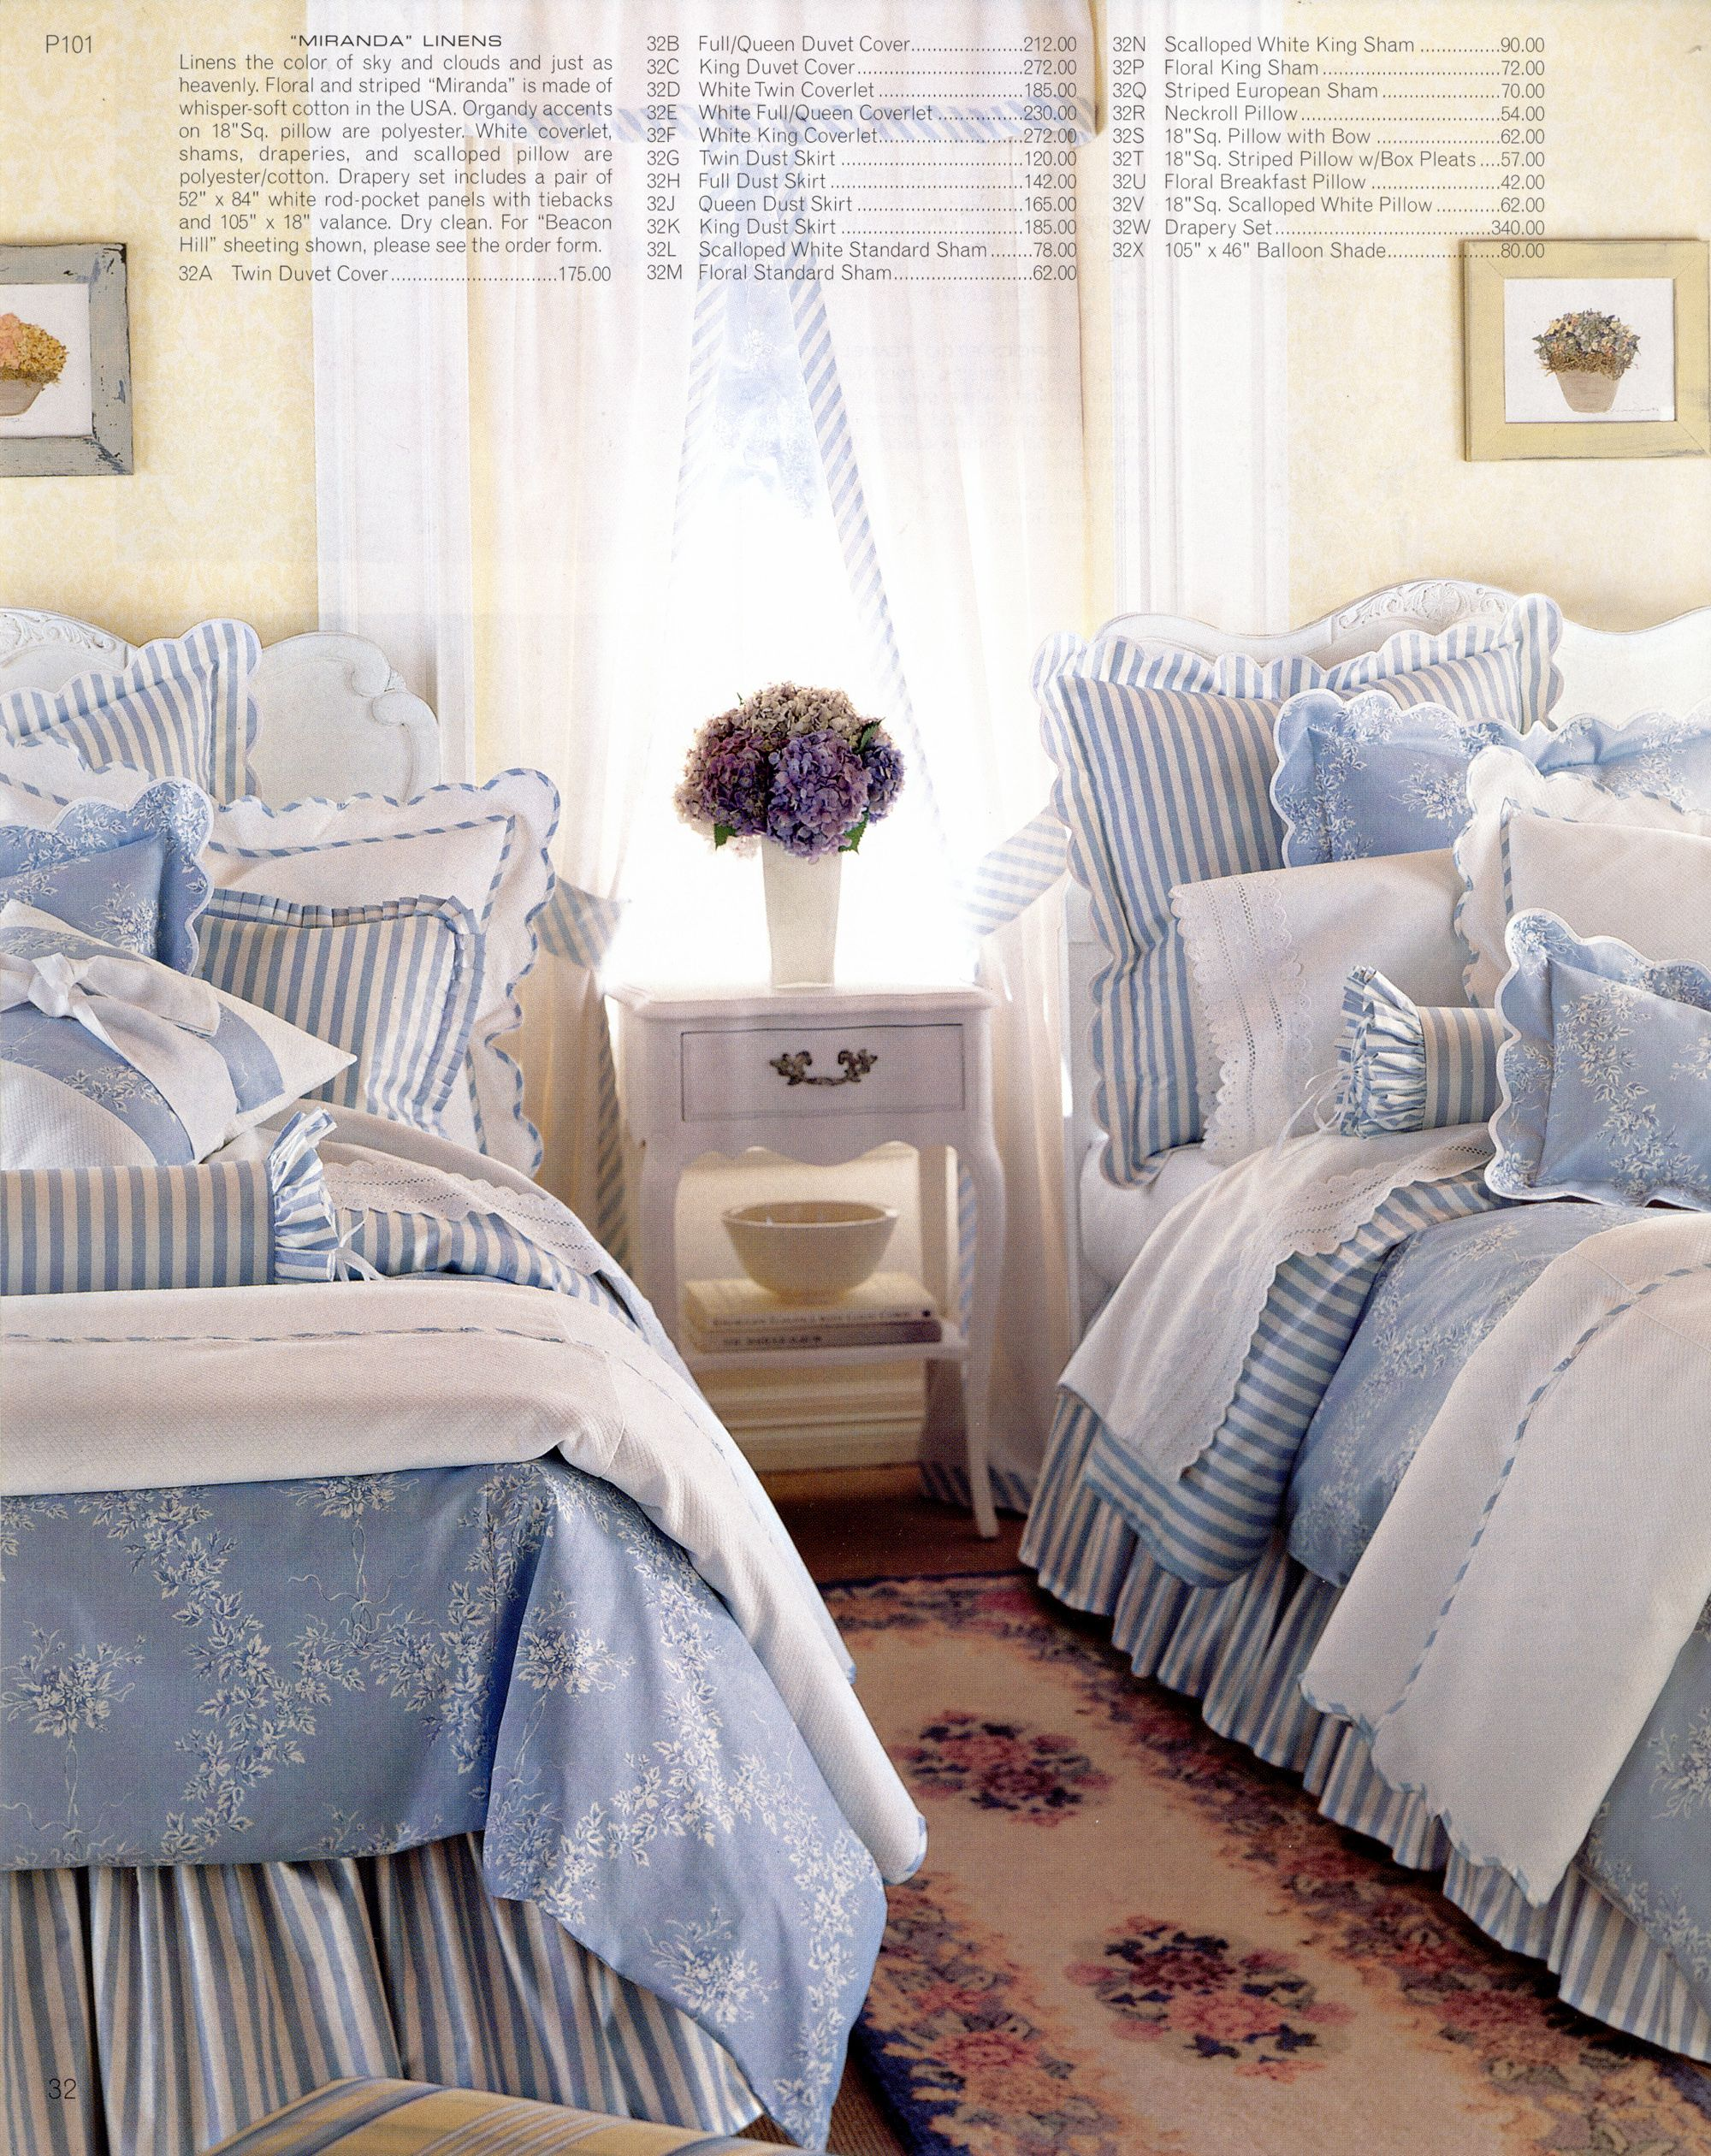 Pale White Blue Cottage Bedding Just Love The Blending Of Colors